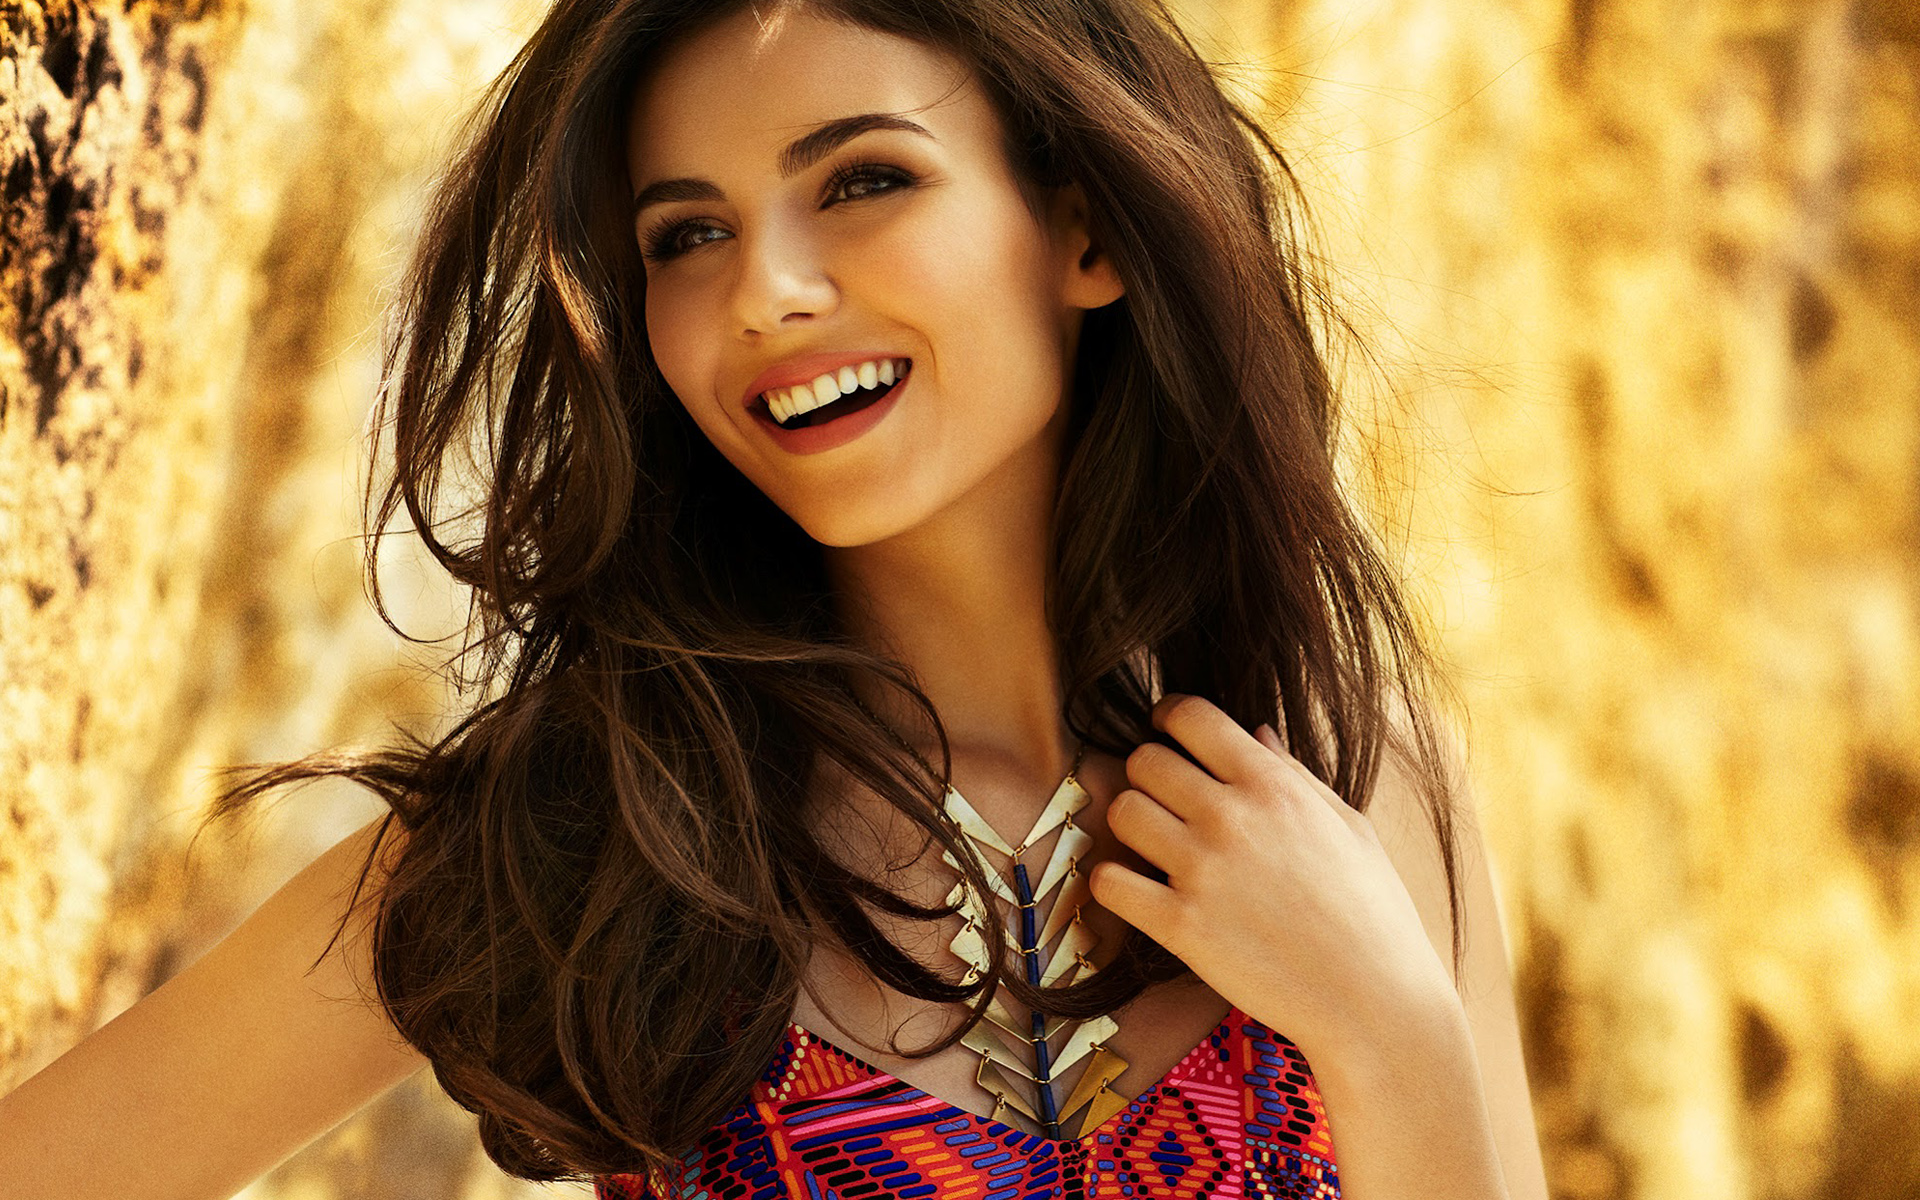 1920x1200 - Victoria Justice Wallpapers 24